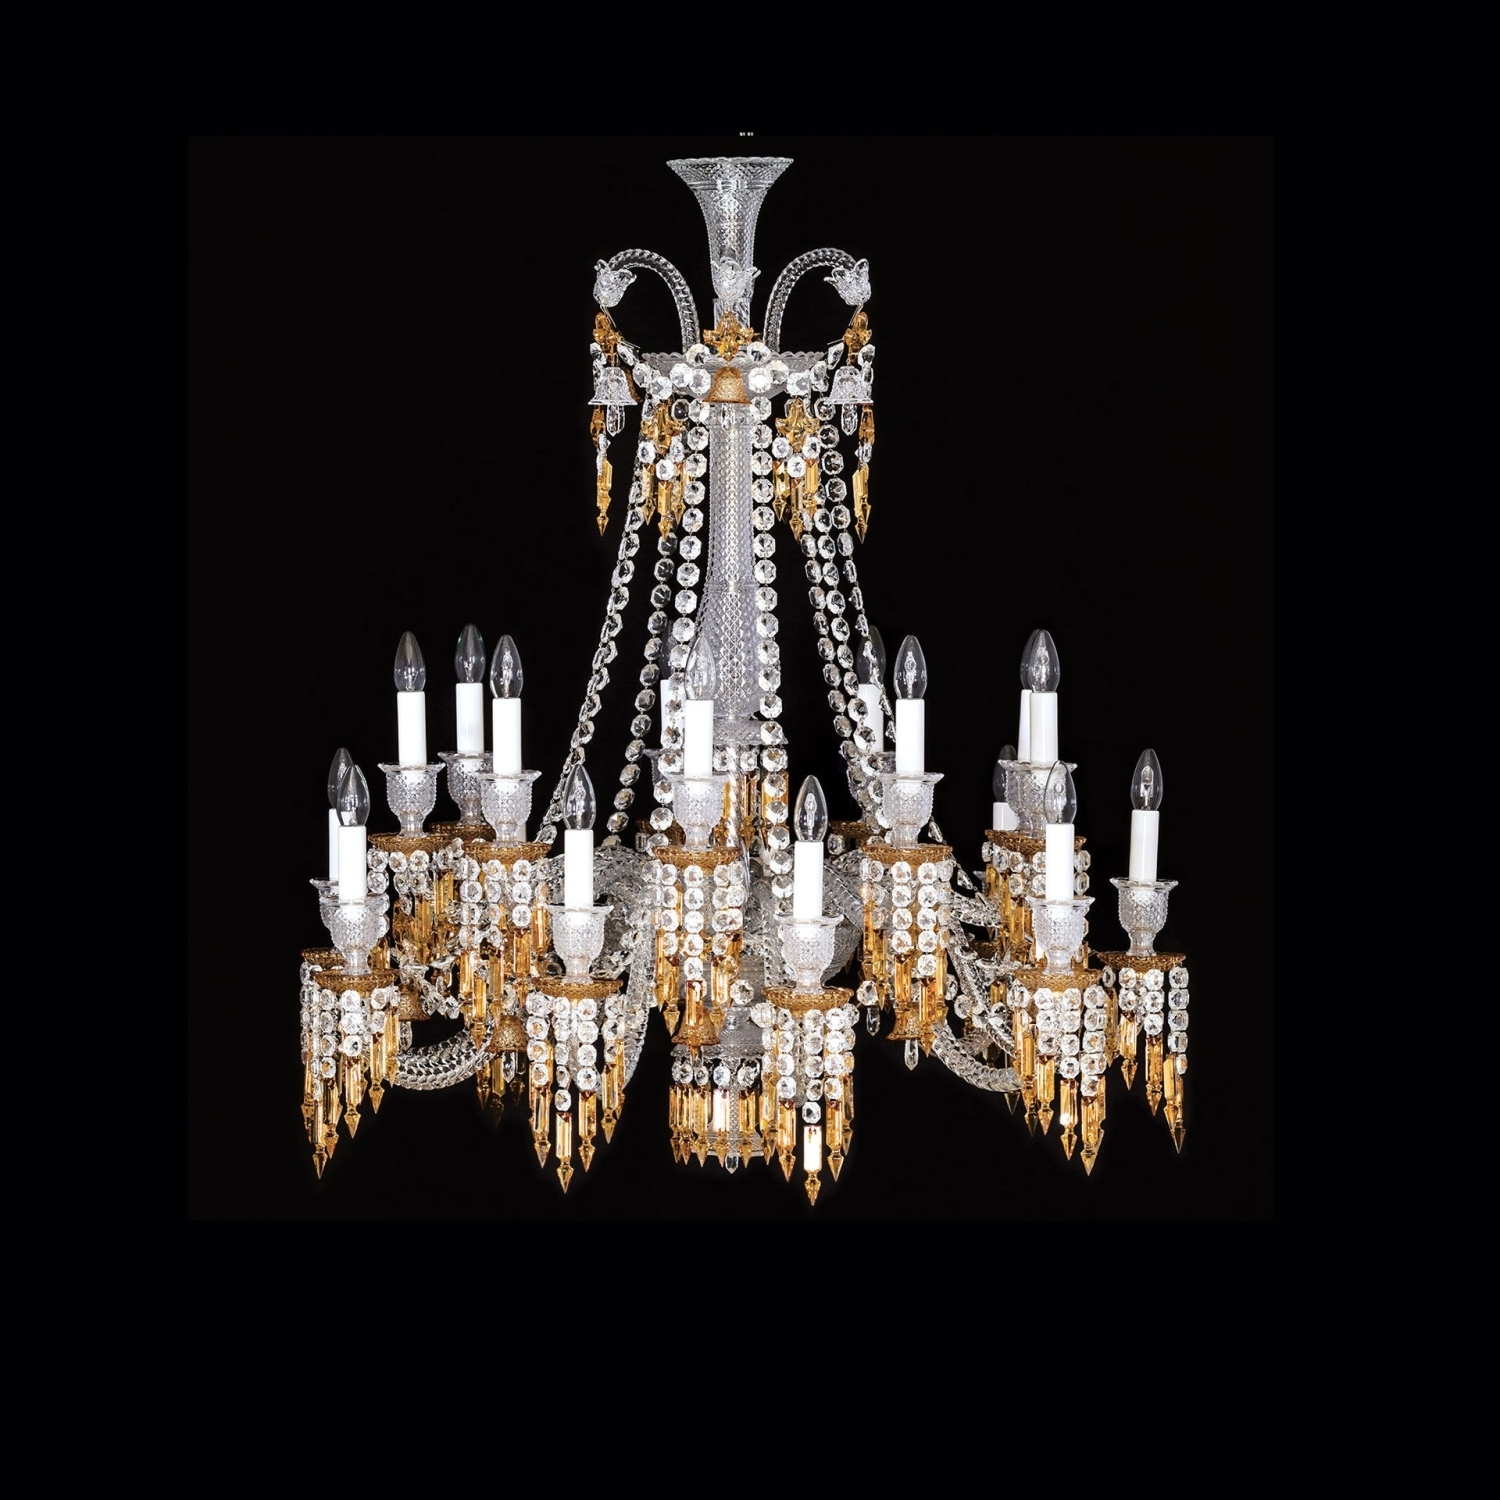 Chandelier 18L Baccarat Zenith Charleston 2809420 In Popular Short Chandelier (View 4 of 20)